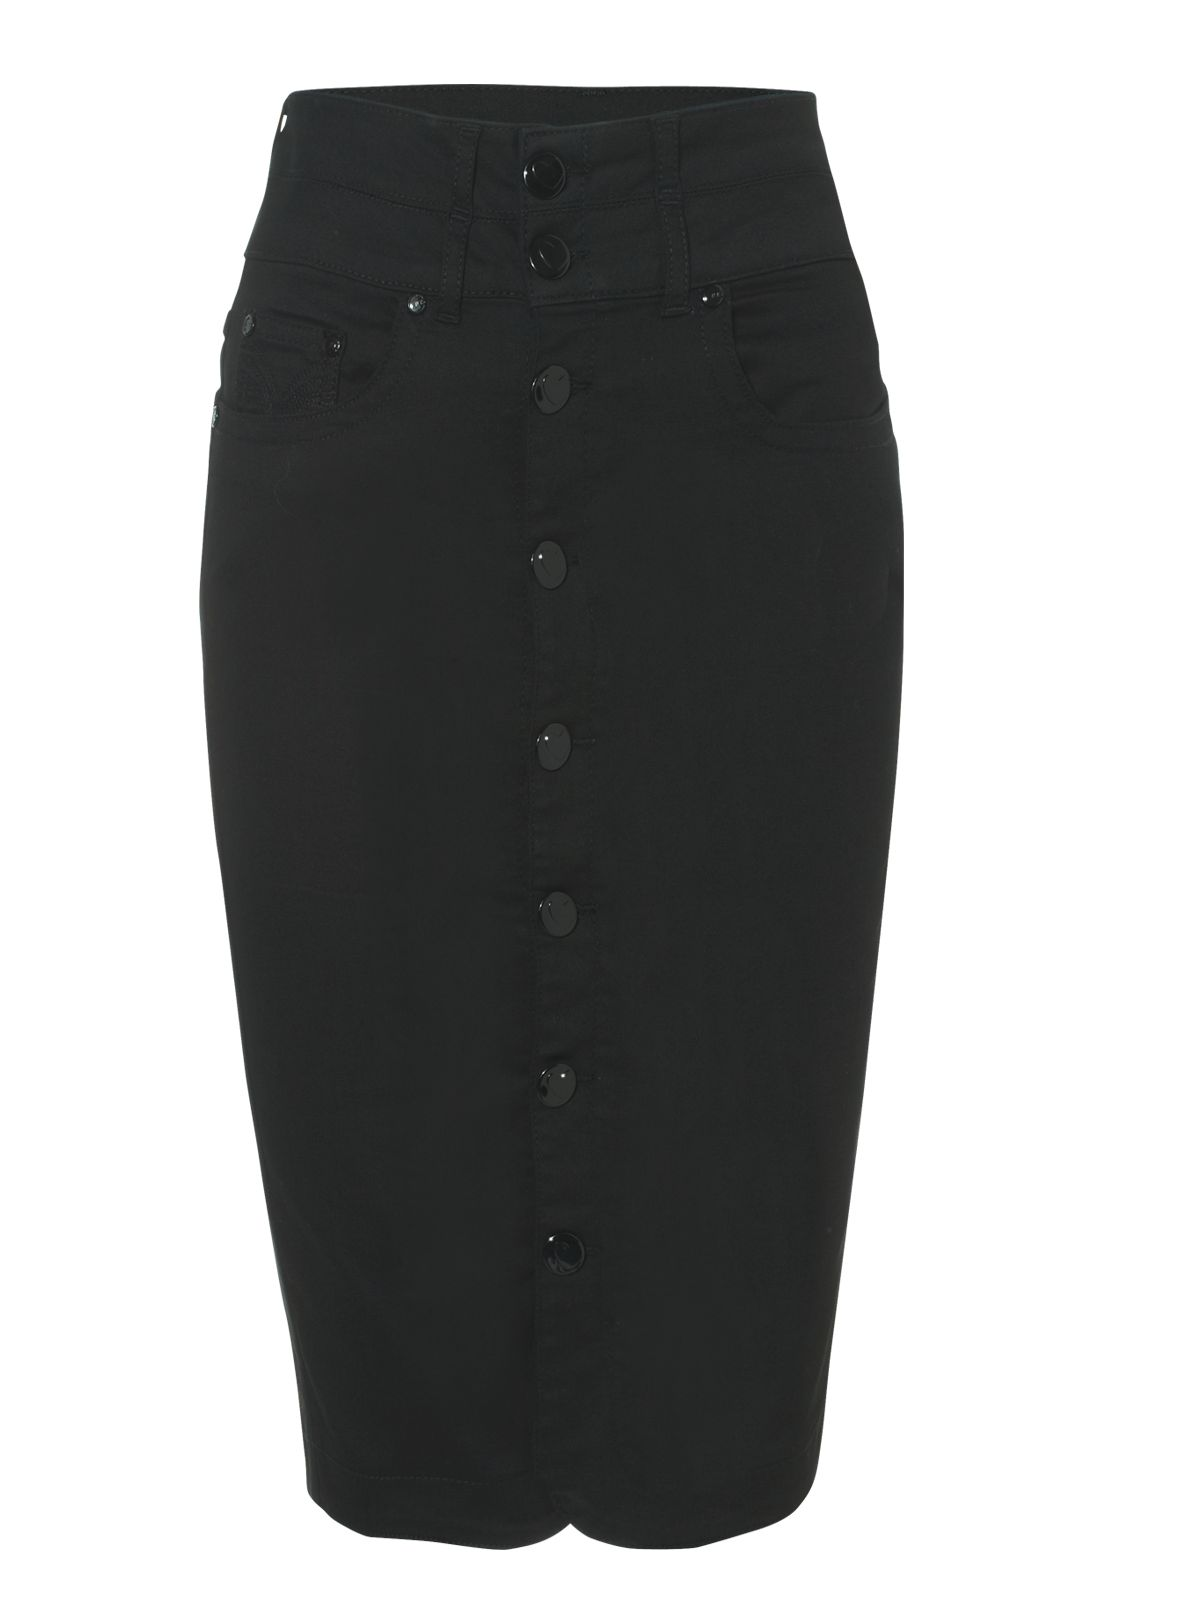 high waisted denim pencil skirt jane norman black high waisted denim pencil skirt in black 3851